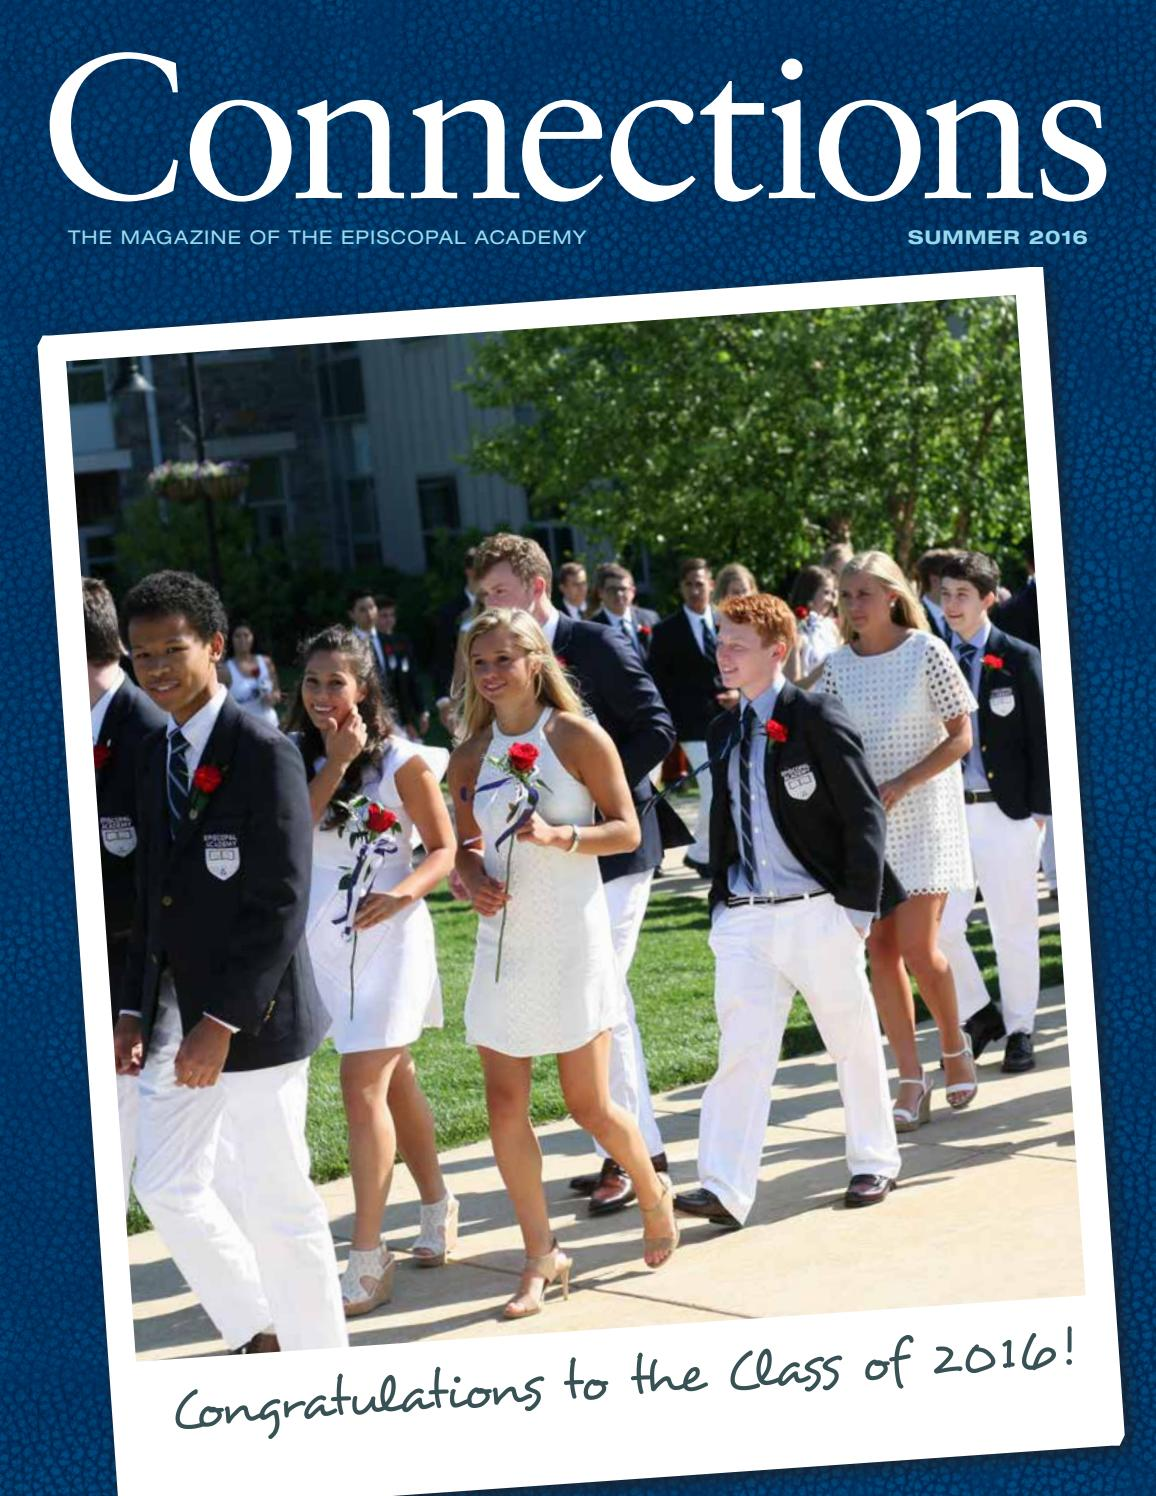 ecfd5ae0b9e Connections  Summer 2016 by The Episcopal Academy - issuu